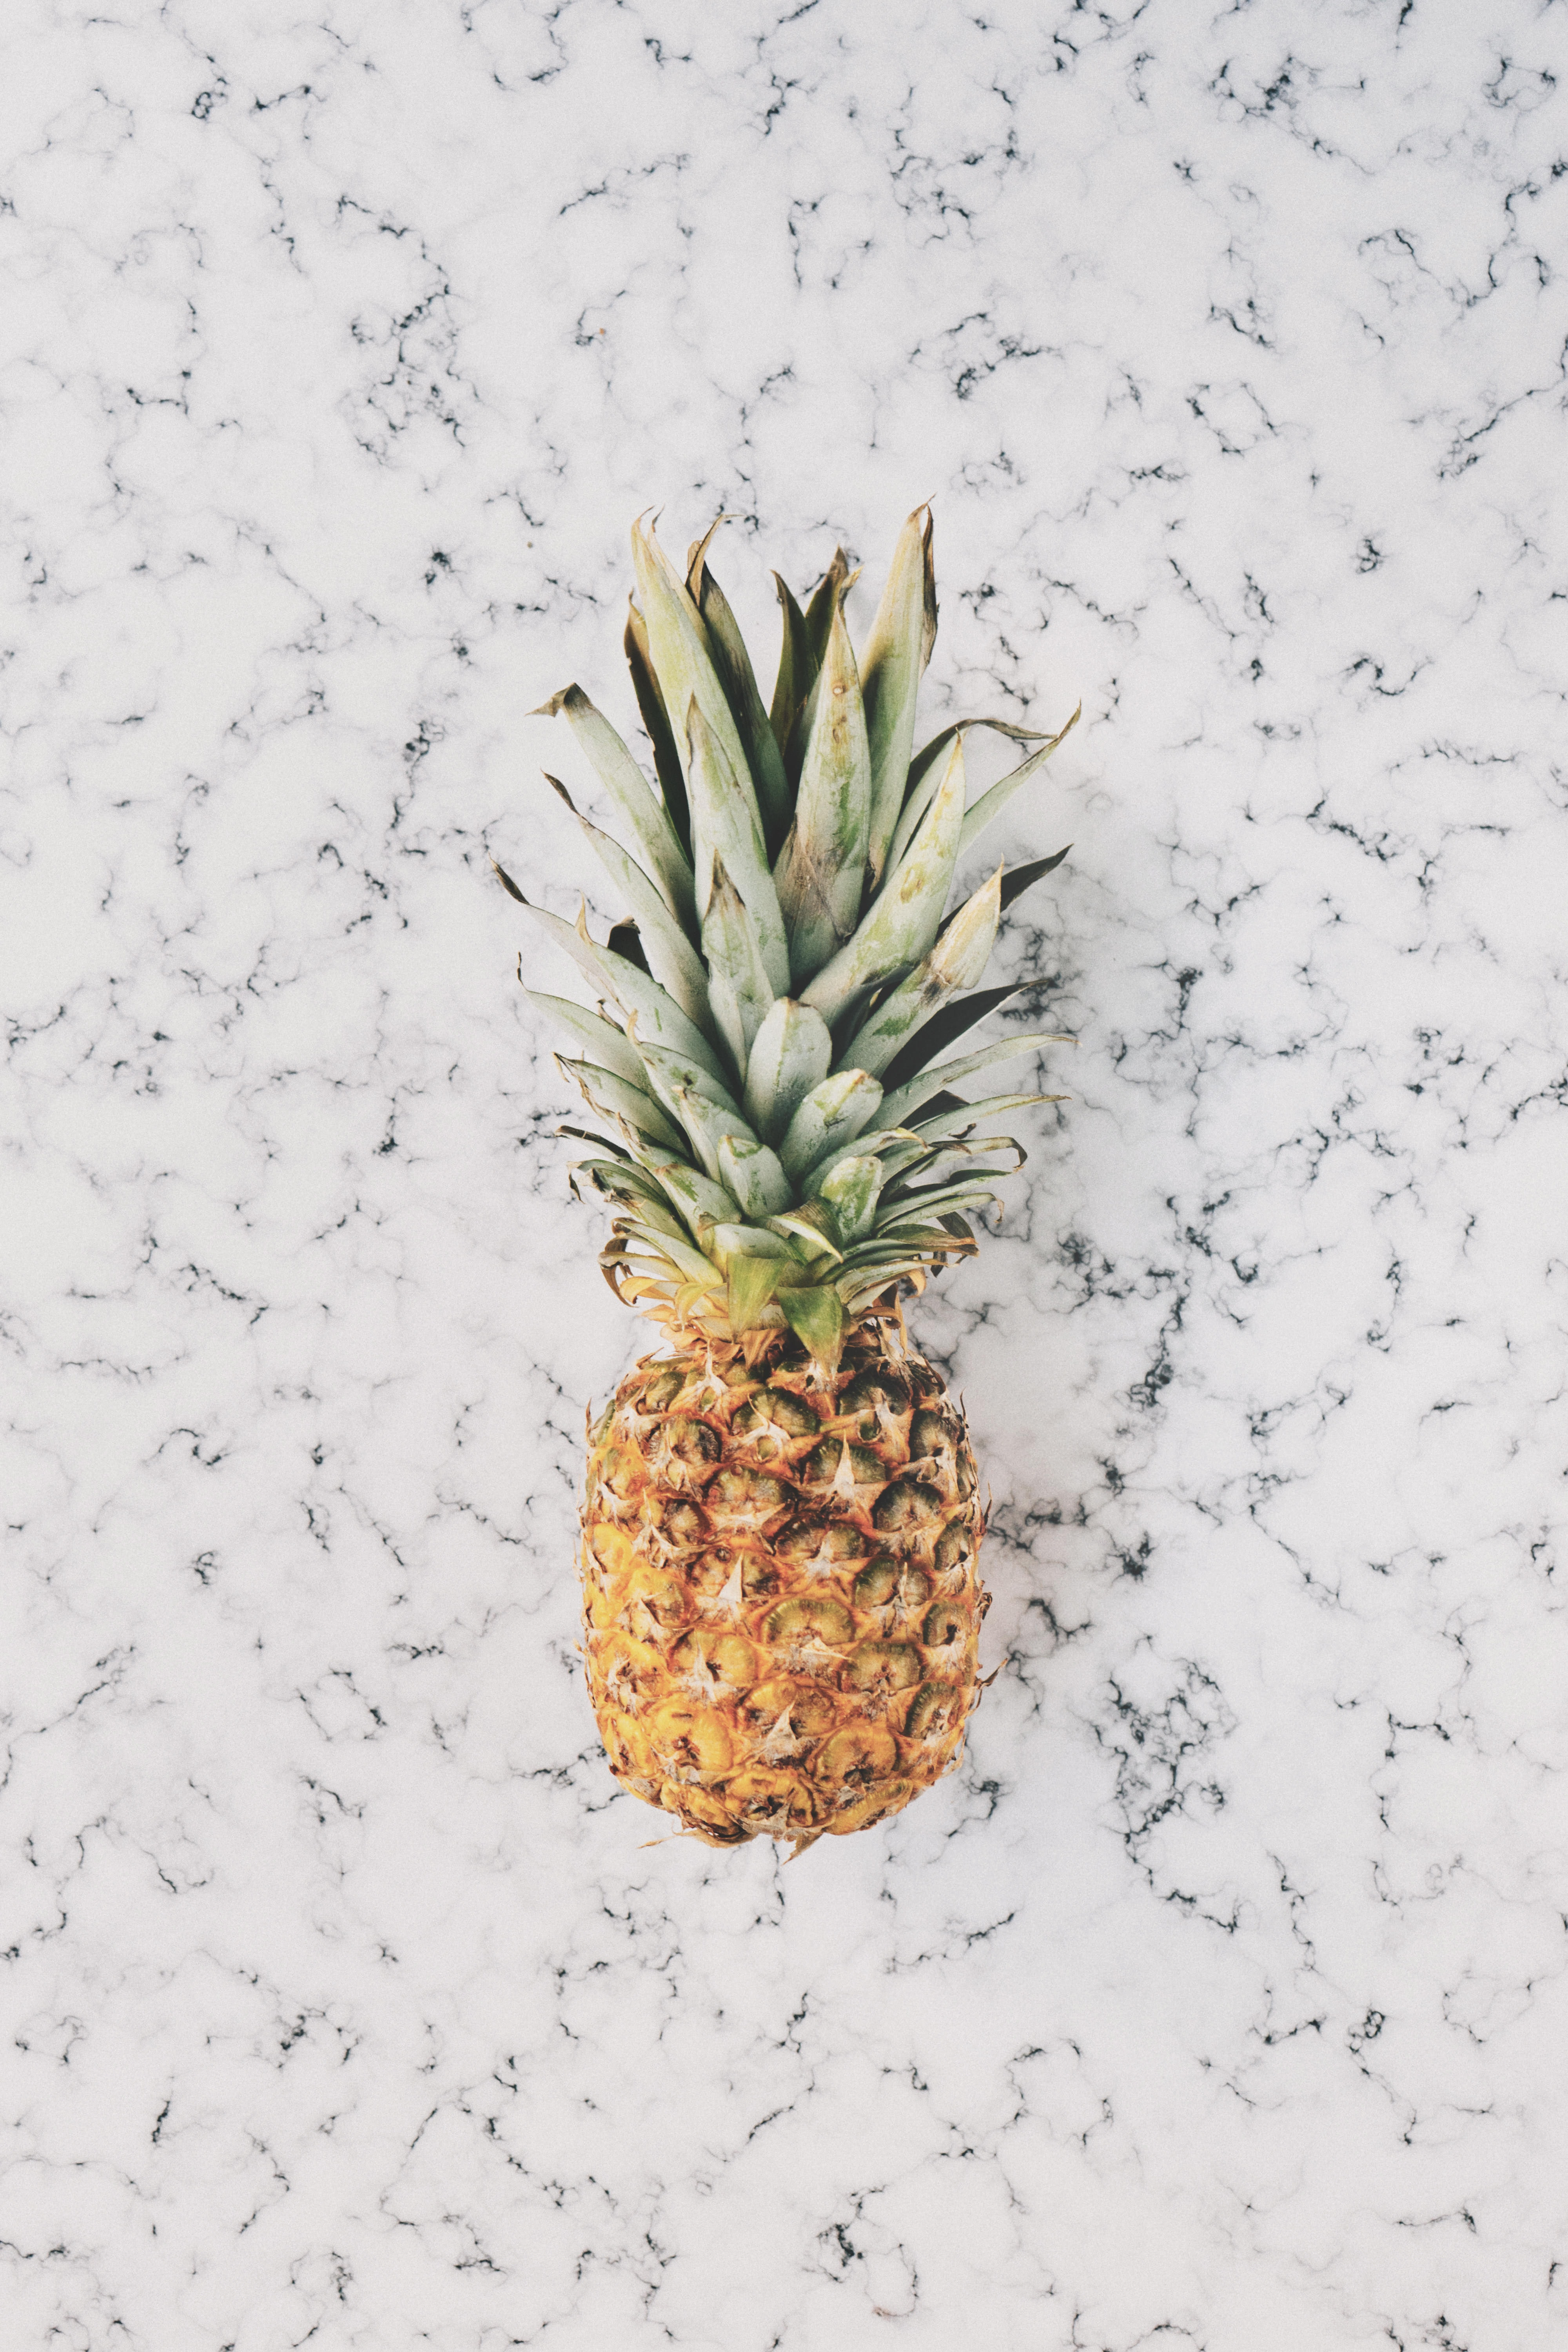 A pineapple sitting on a white countertop.